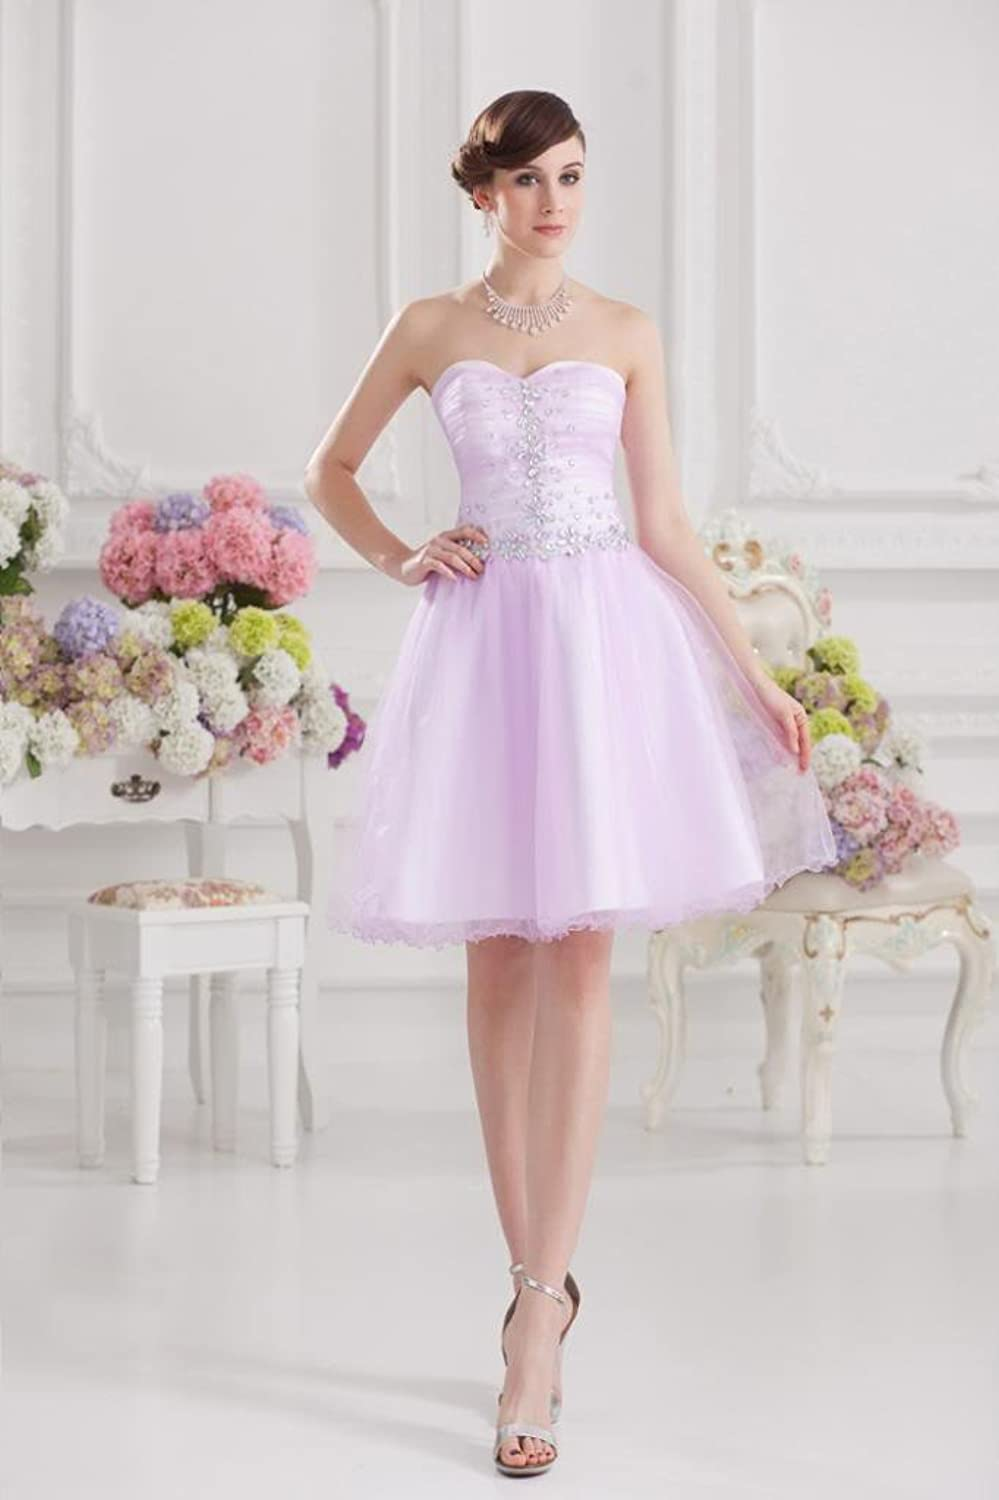 GEORGE BRIDE Sweetheart Beaded Bodice Knee-length Party Dress, Lilac, 46